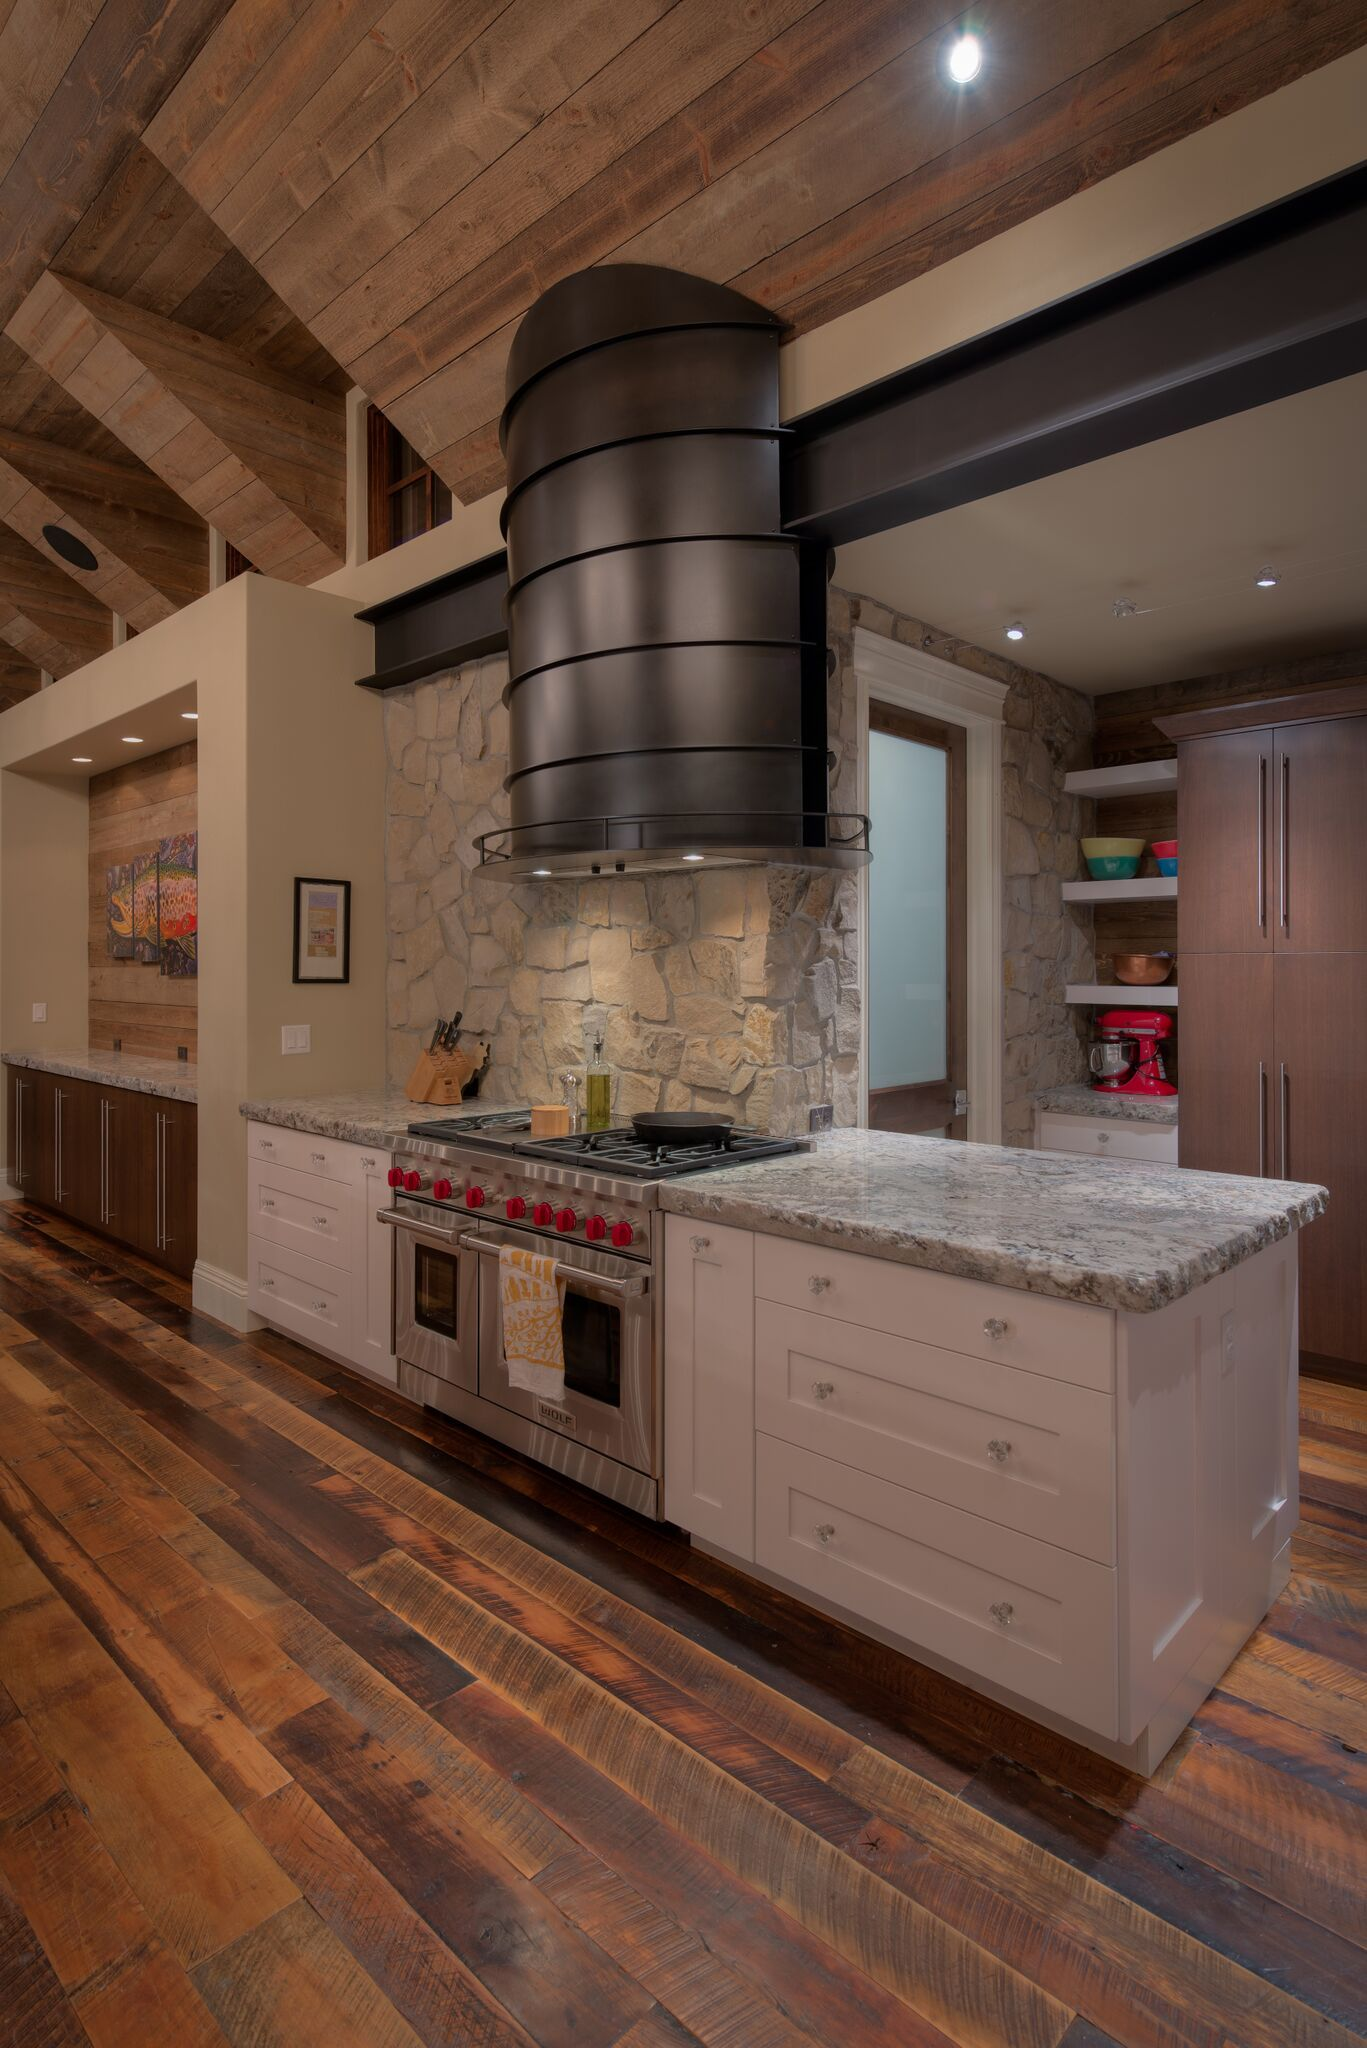 Basalt Kitchen Vent In The Rustic